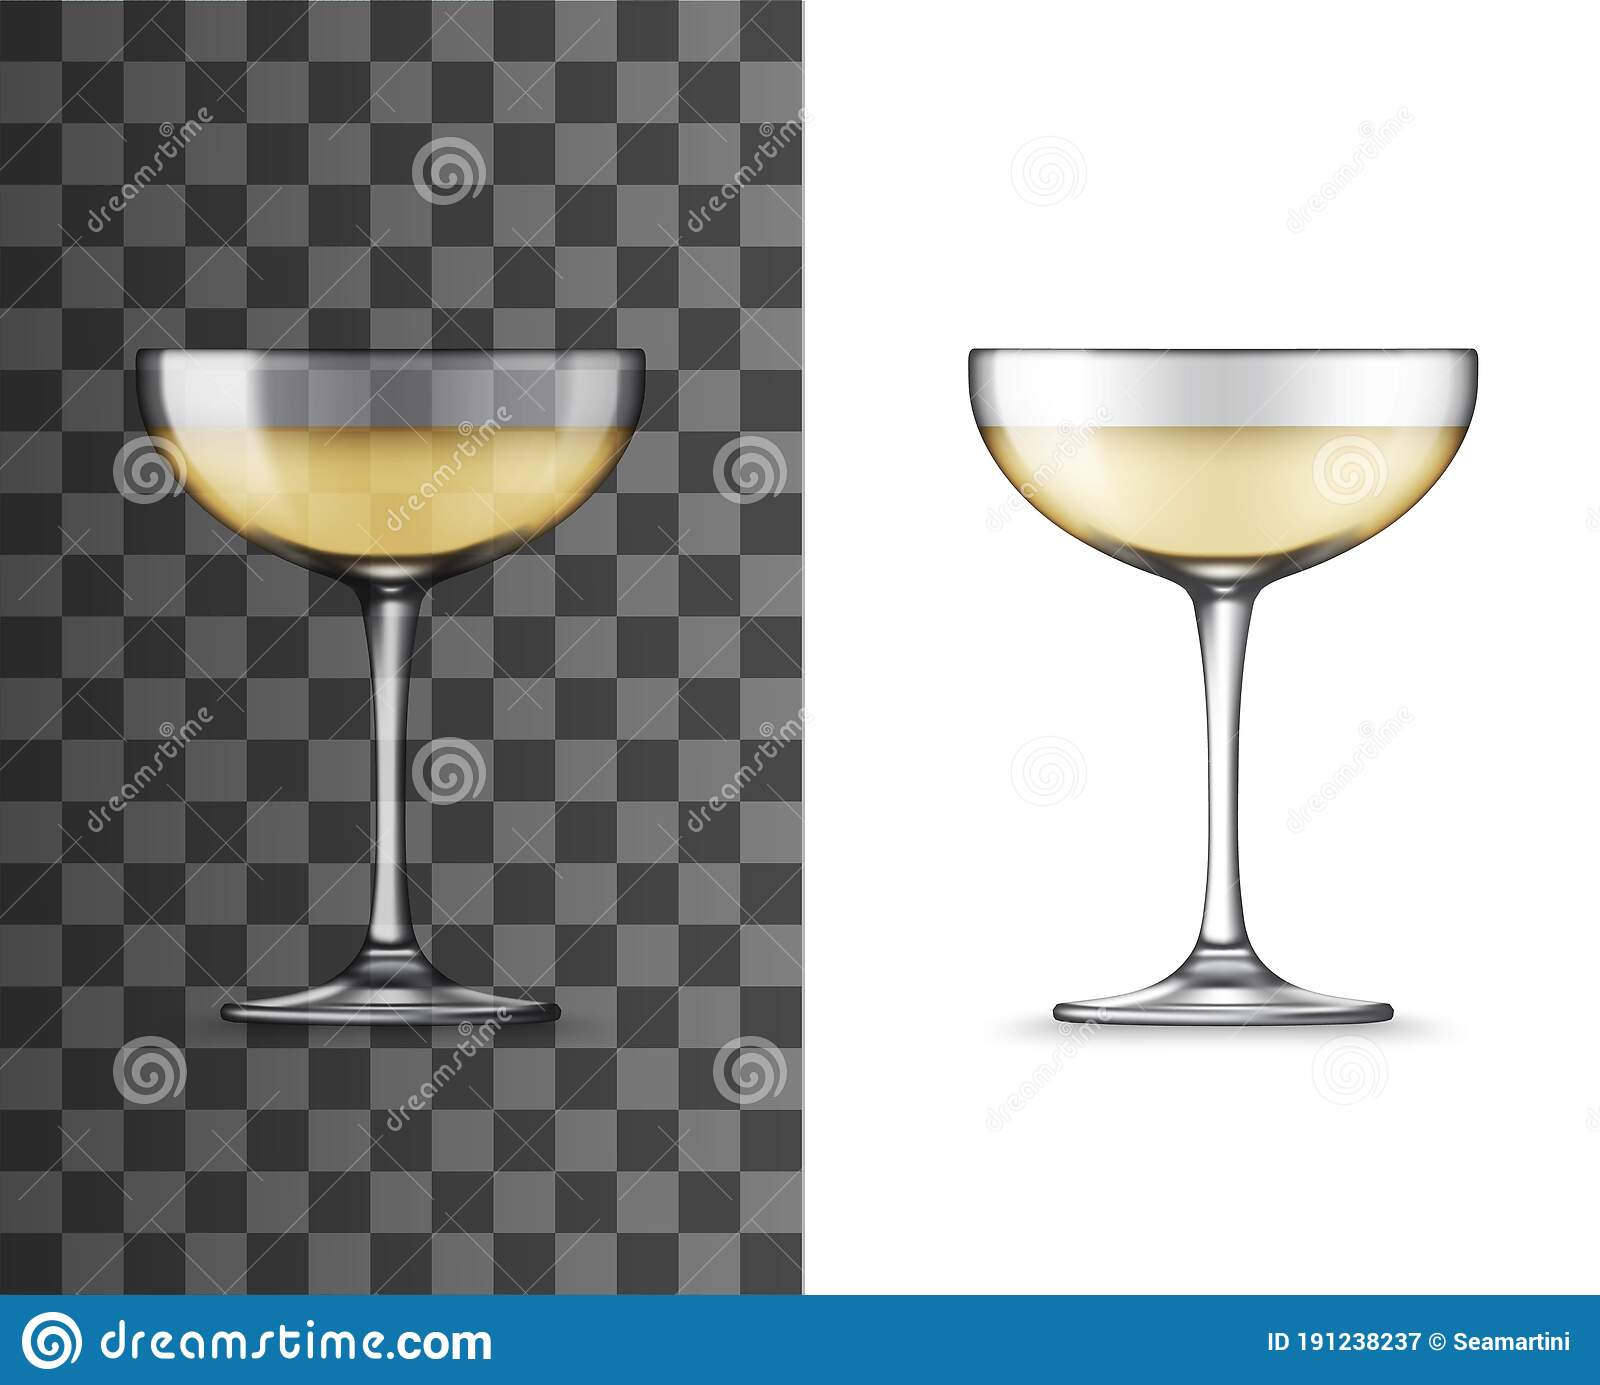 Champagne Coupe Stock Illustrations 103 Champagne Coupe Stock Illustrations Vectors Clipart Dreamstime